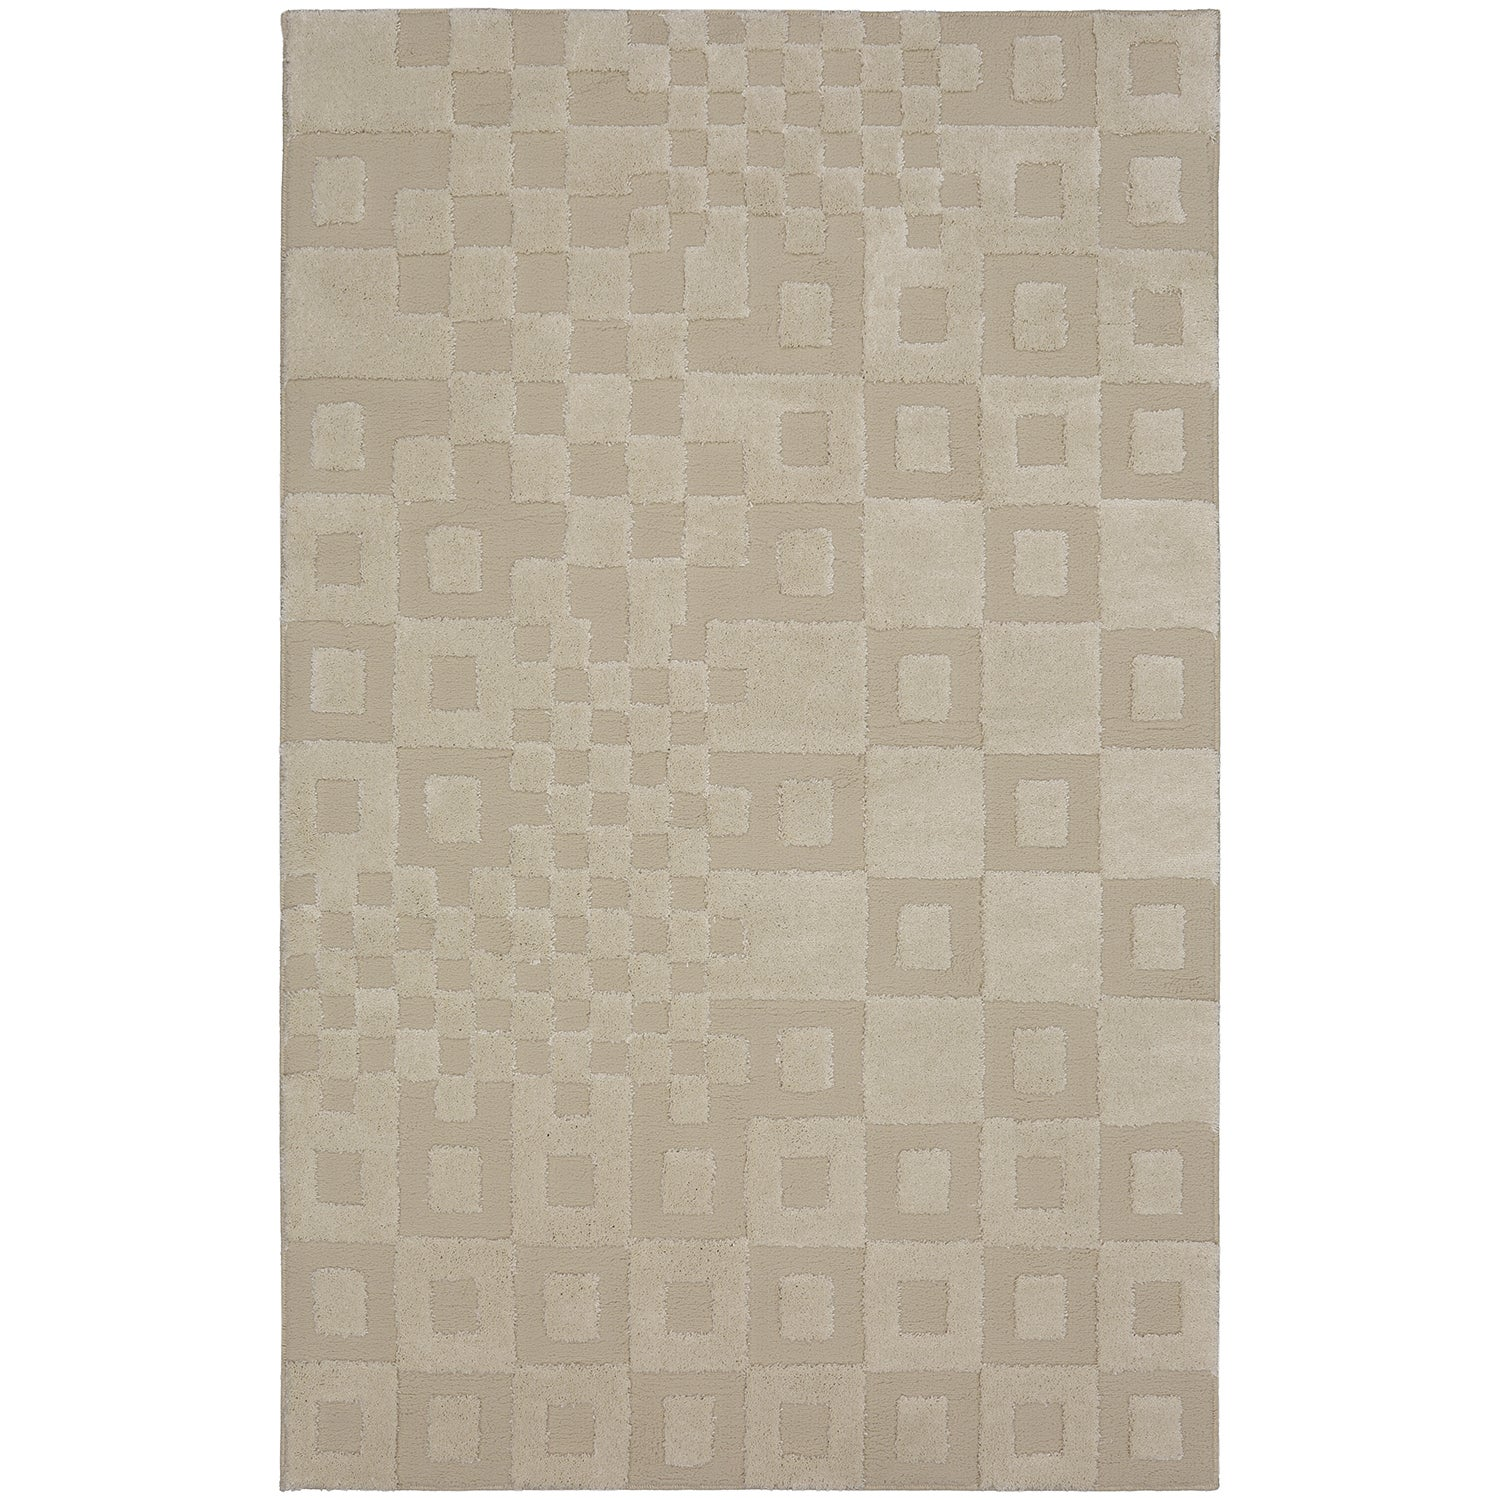 MOHAWK Home Loft Tile Time Cream (Ivory) Area Rug (5' x 8...